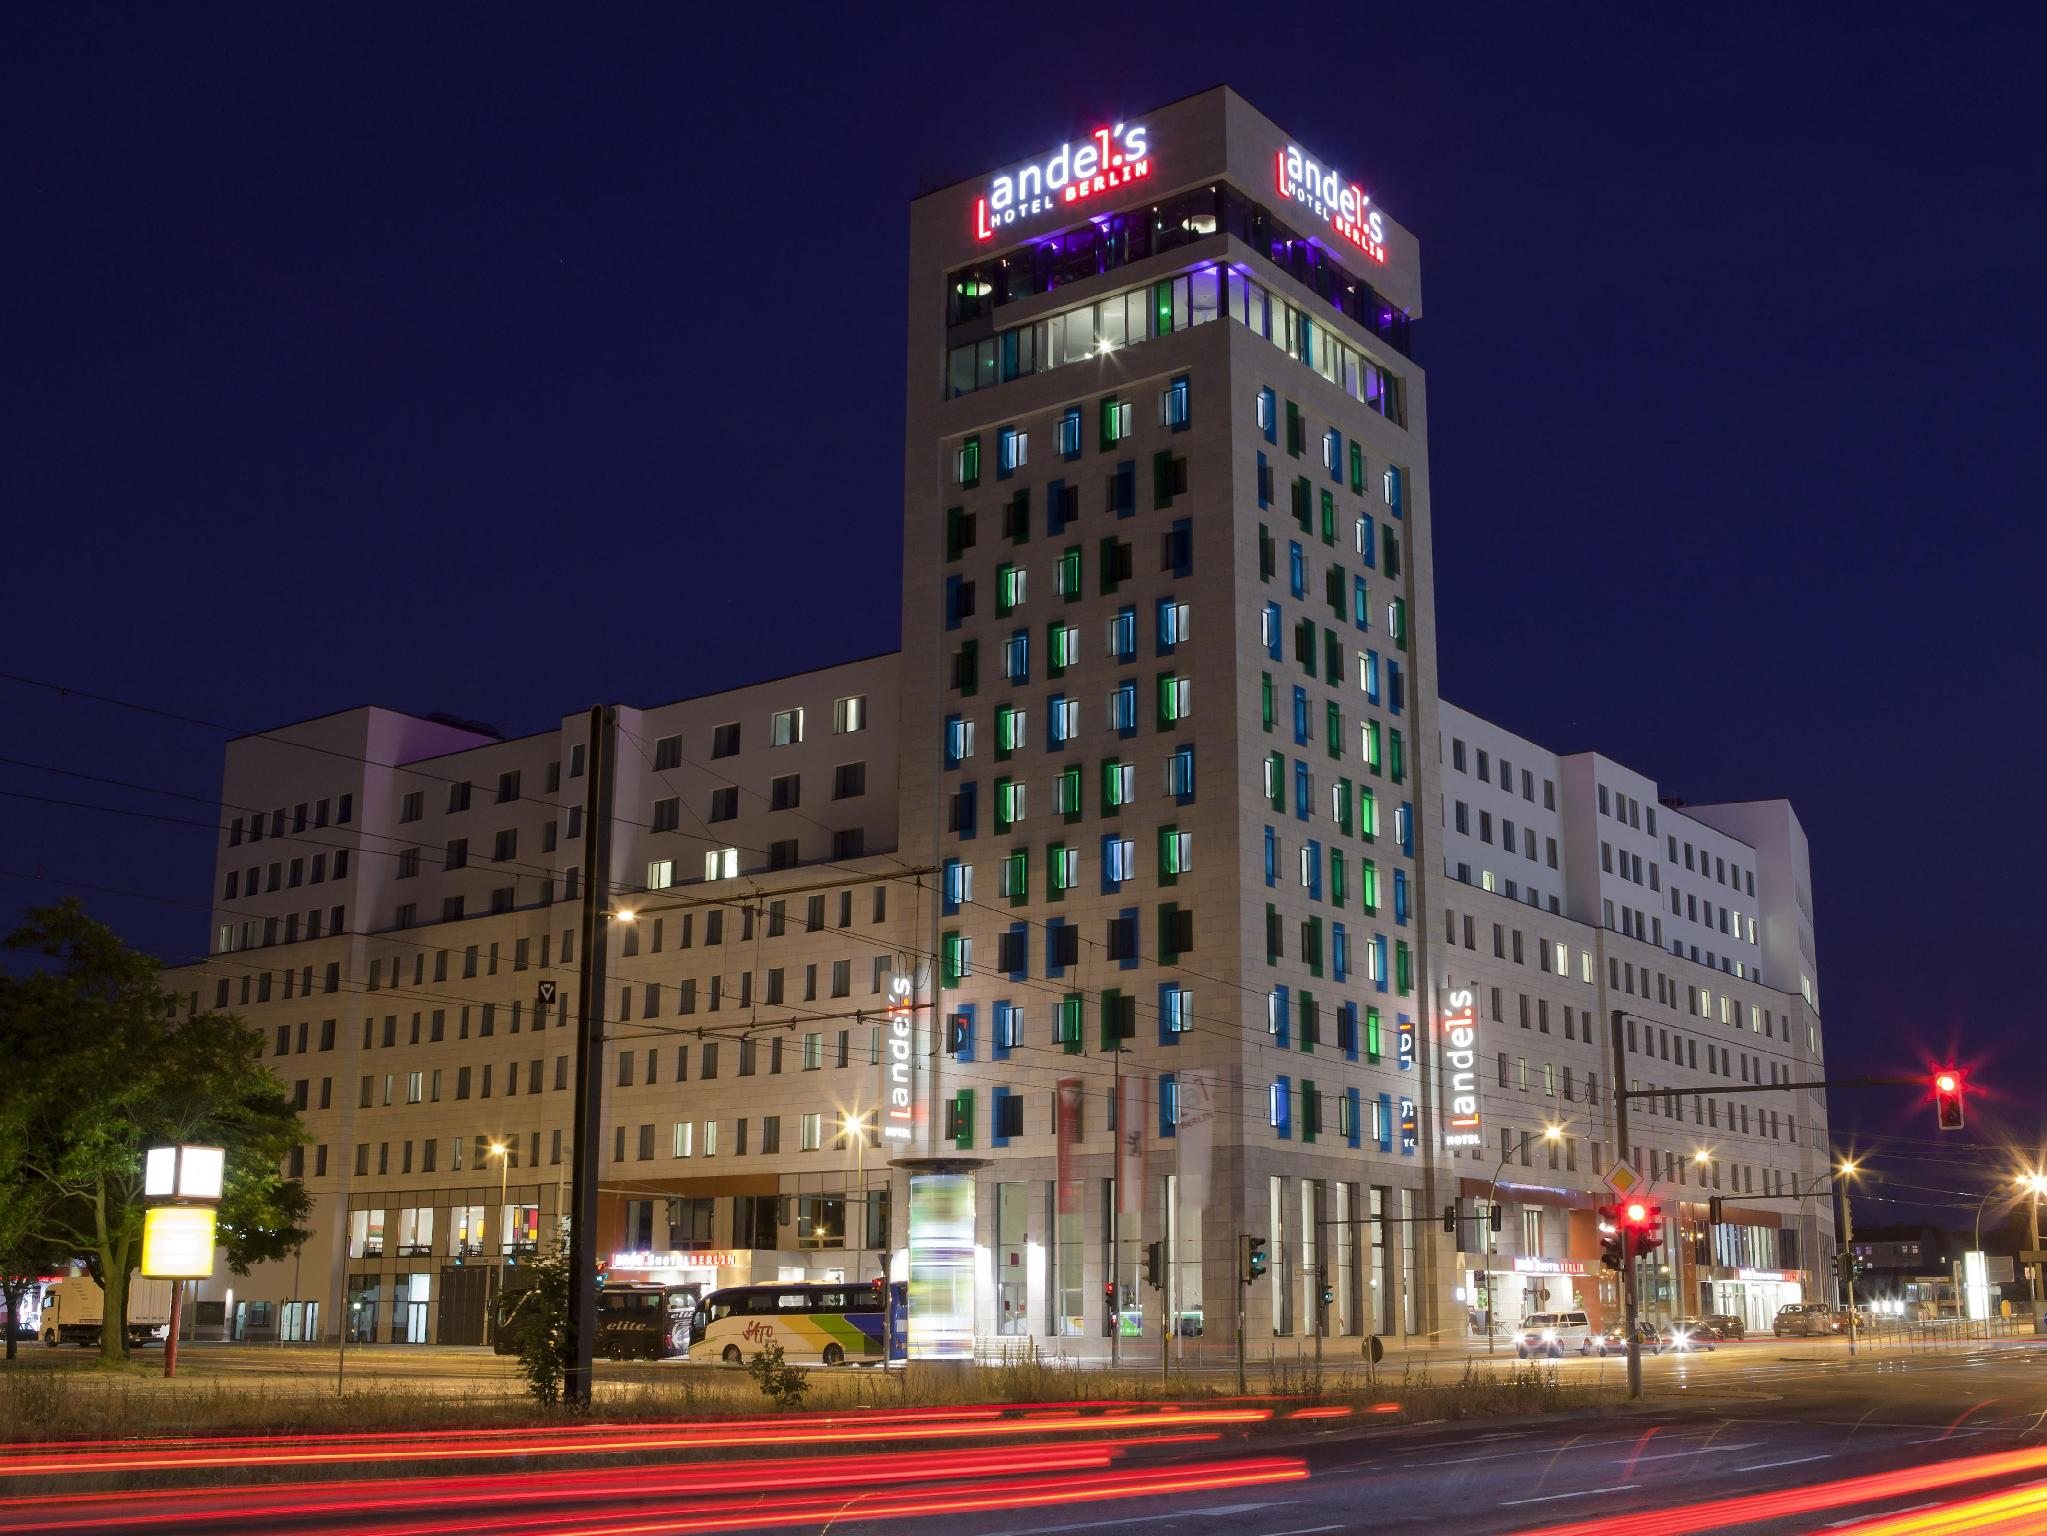 andel's Hotel Berlin, managed by Vienna International Hotels and Resorts Berliin